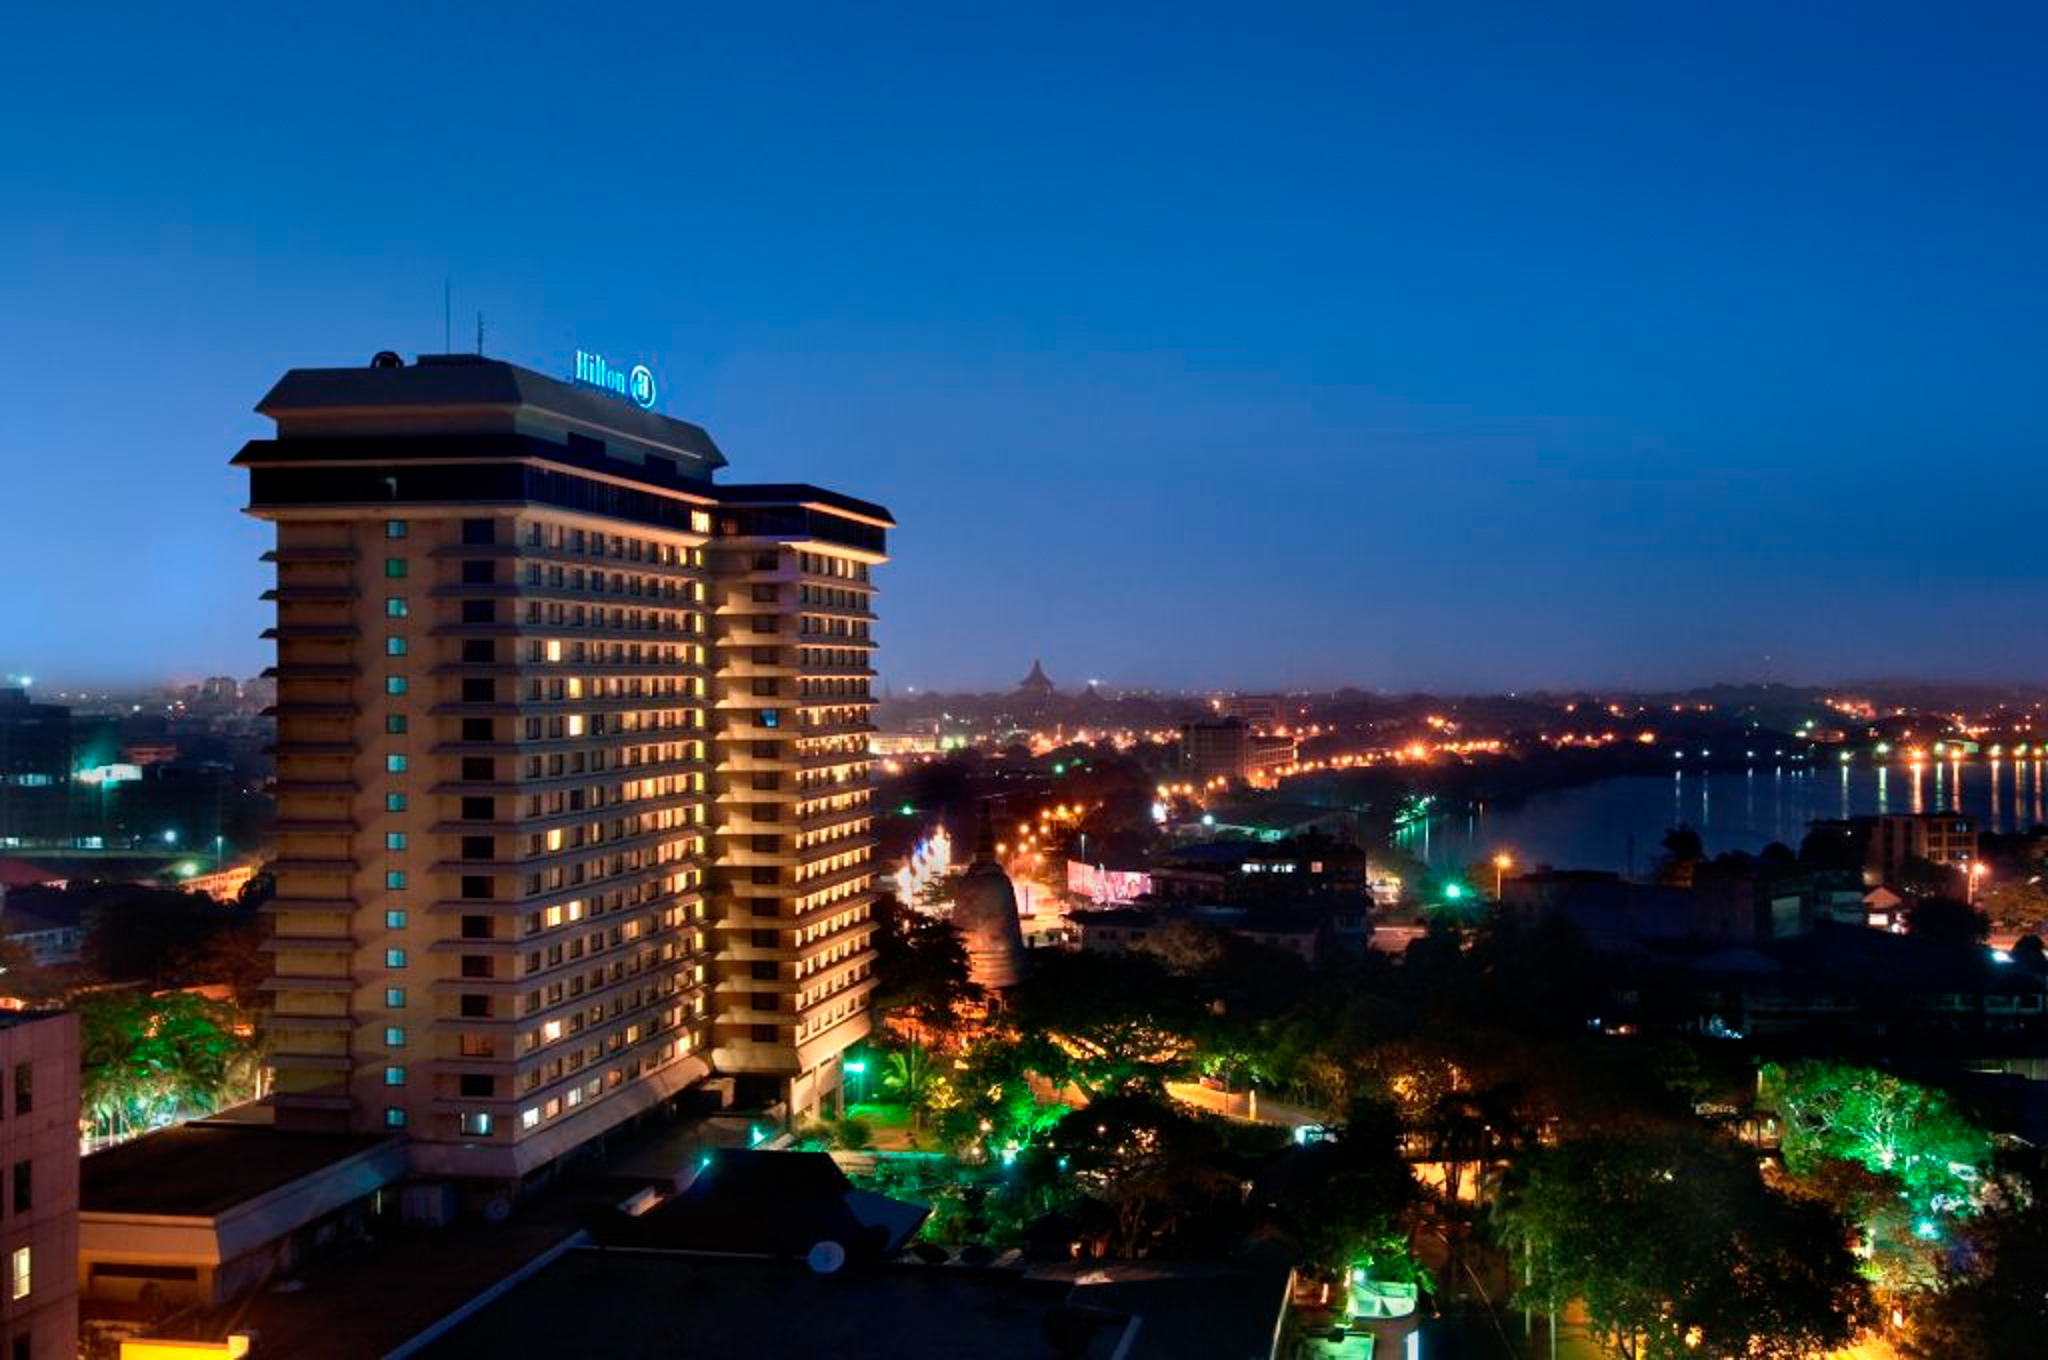 Hilton Colombo is a hotel in Colombo